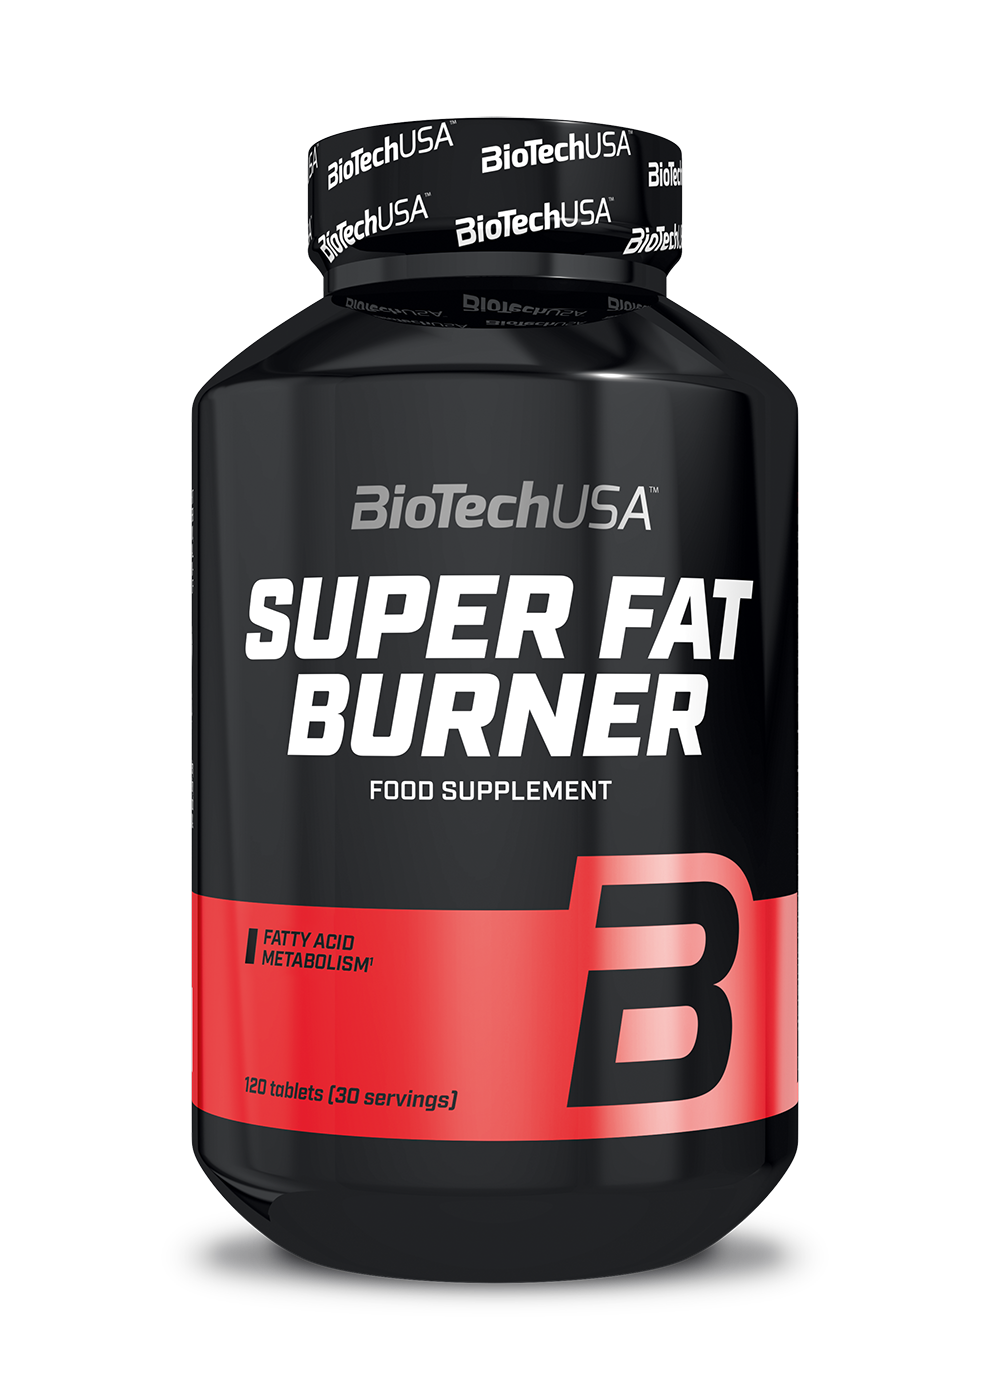 Super Fat Burner BioTech USA